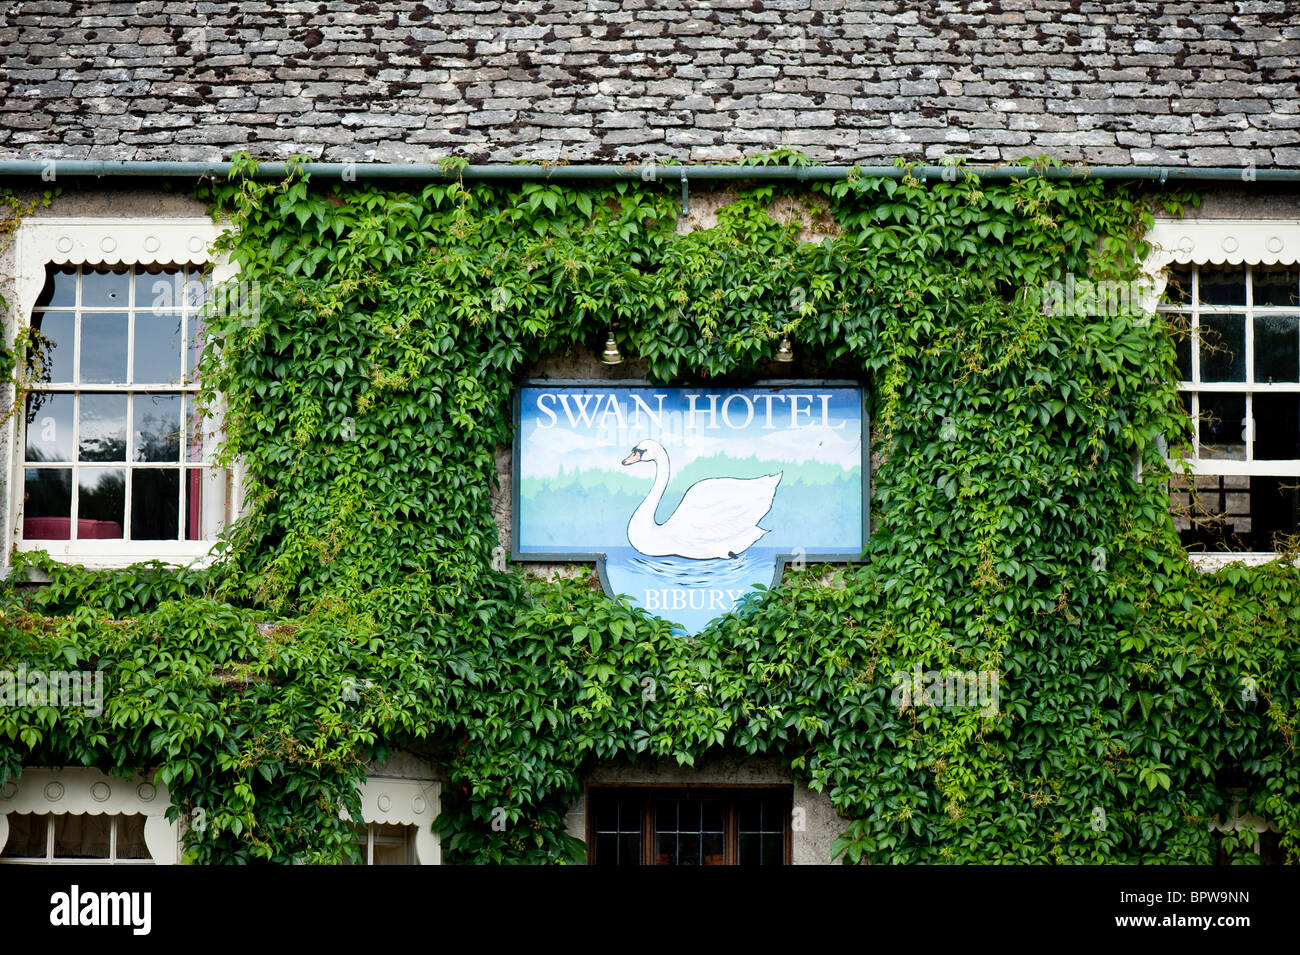 Swan Hotel, Bibury, Cotswolds, Gloucestershire, United Kingdom - Stock Image